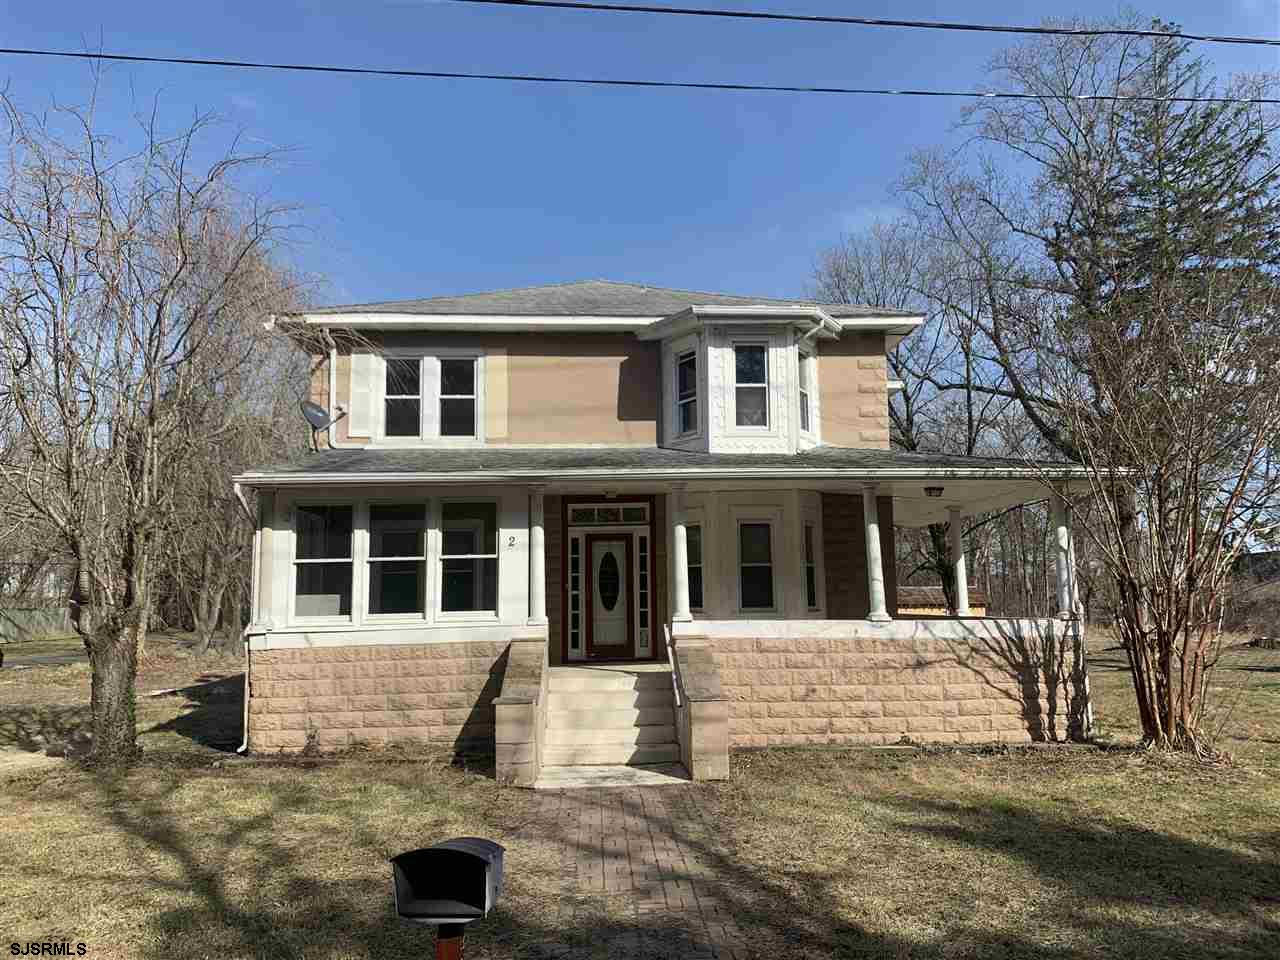 Beautiful home with covered front porch, updated Eat-in kitchen, dining room, family room, nice bedrooms sizes, hardwood floors. Wood staircase, charming features! Situated on nice lot with yard. Being sold AS-IS!